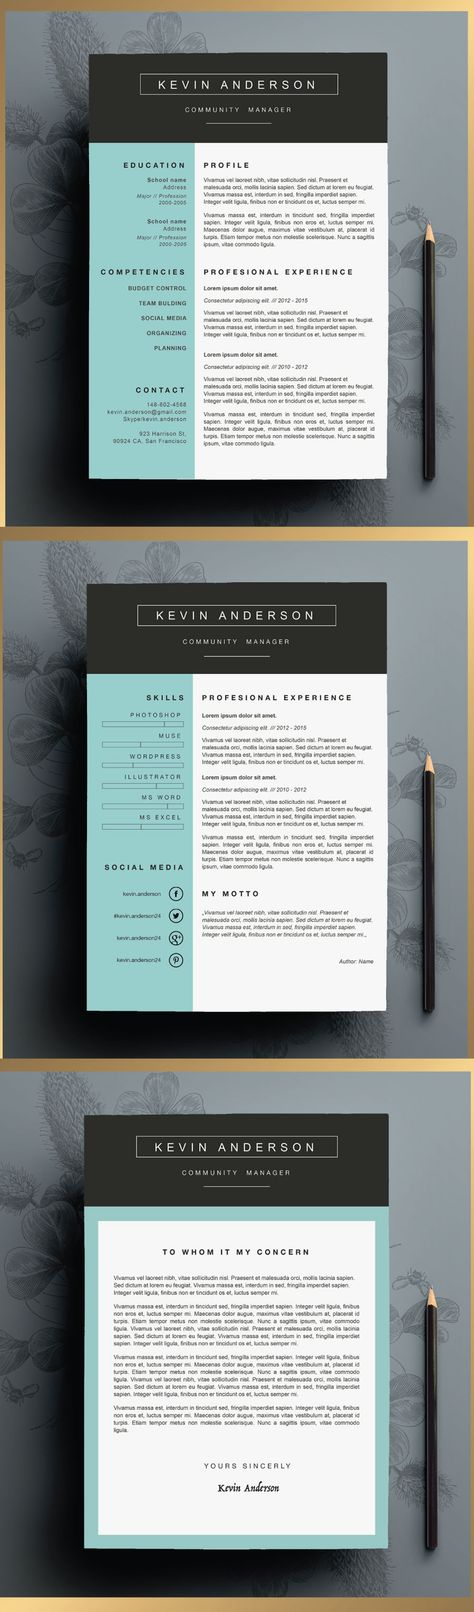 9 best images about Resume on Pinterest Icons, Template and Free - publisher resume sample